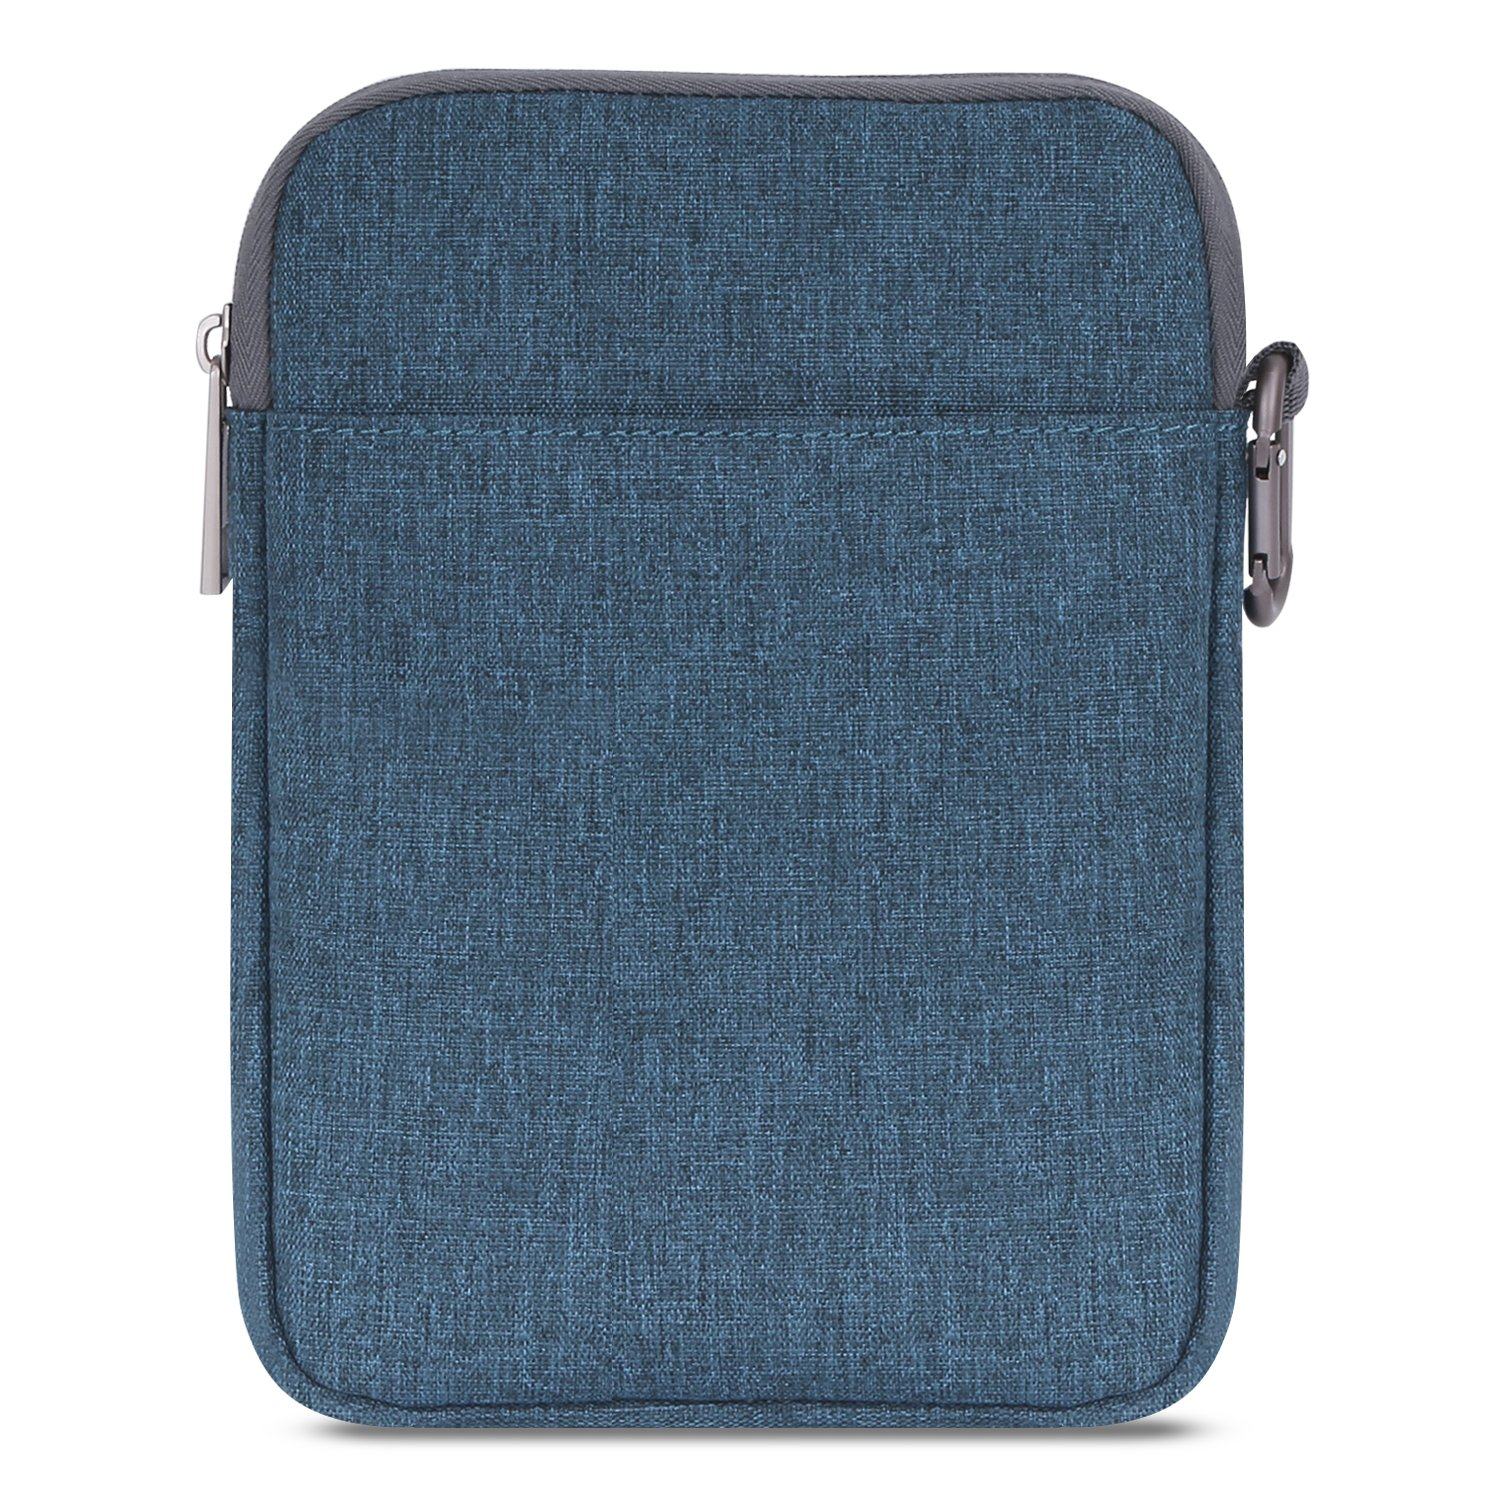 MoKo Sleeve for Kindle Paperwhite/Kindle Voyage, 6-Inch Nylon Cover Pouch Bag for  Kindle Paperwhite/Voyage / All-New Kindle(8th Generation, 2016) / Kindle Oasis E-Reader, Denim Blue A 78233376